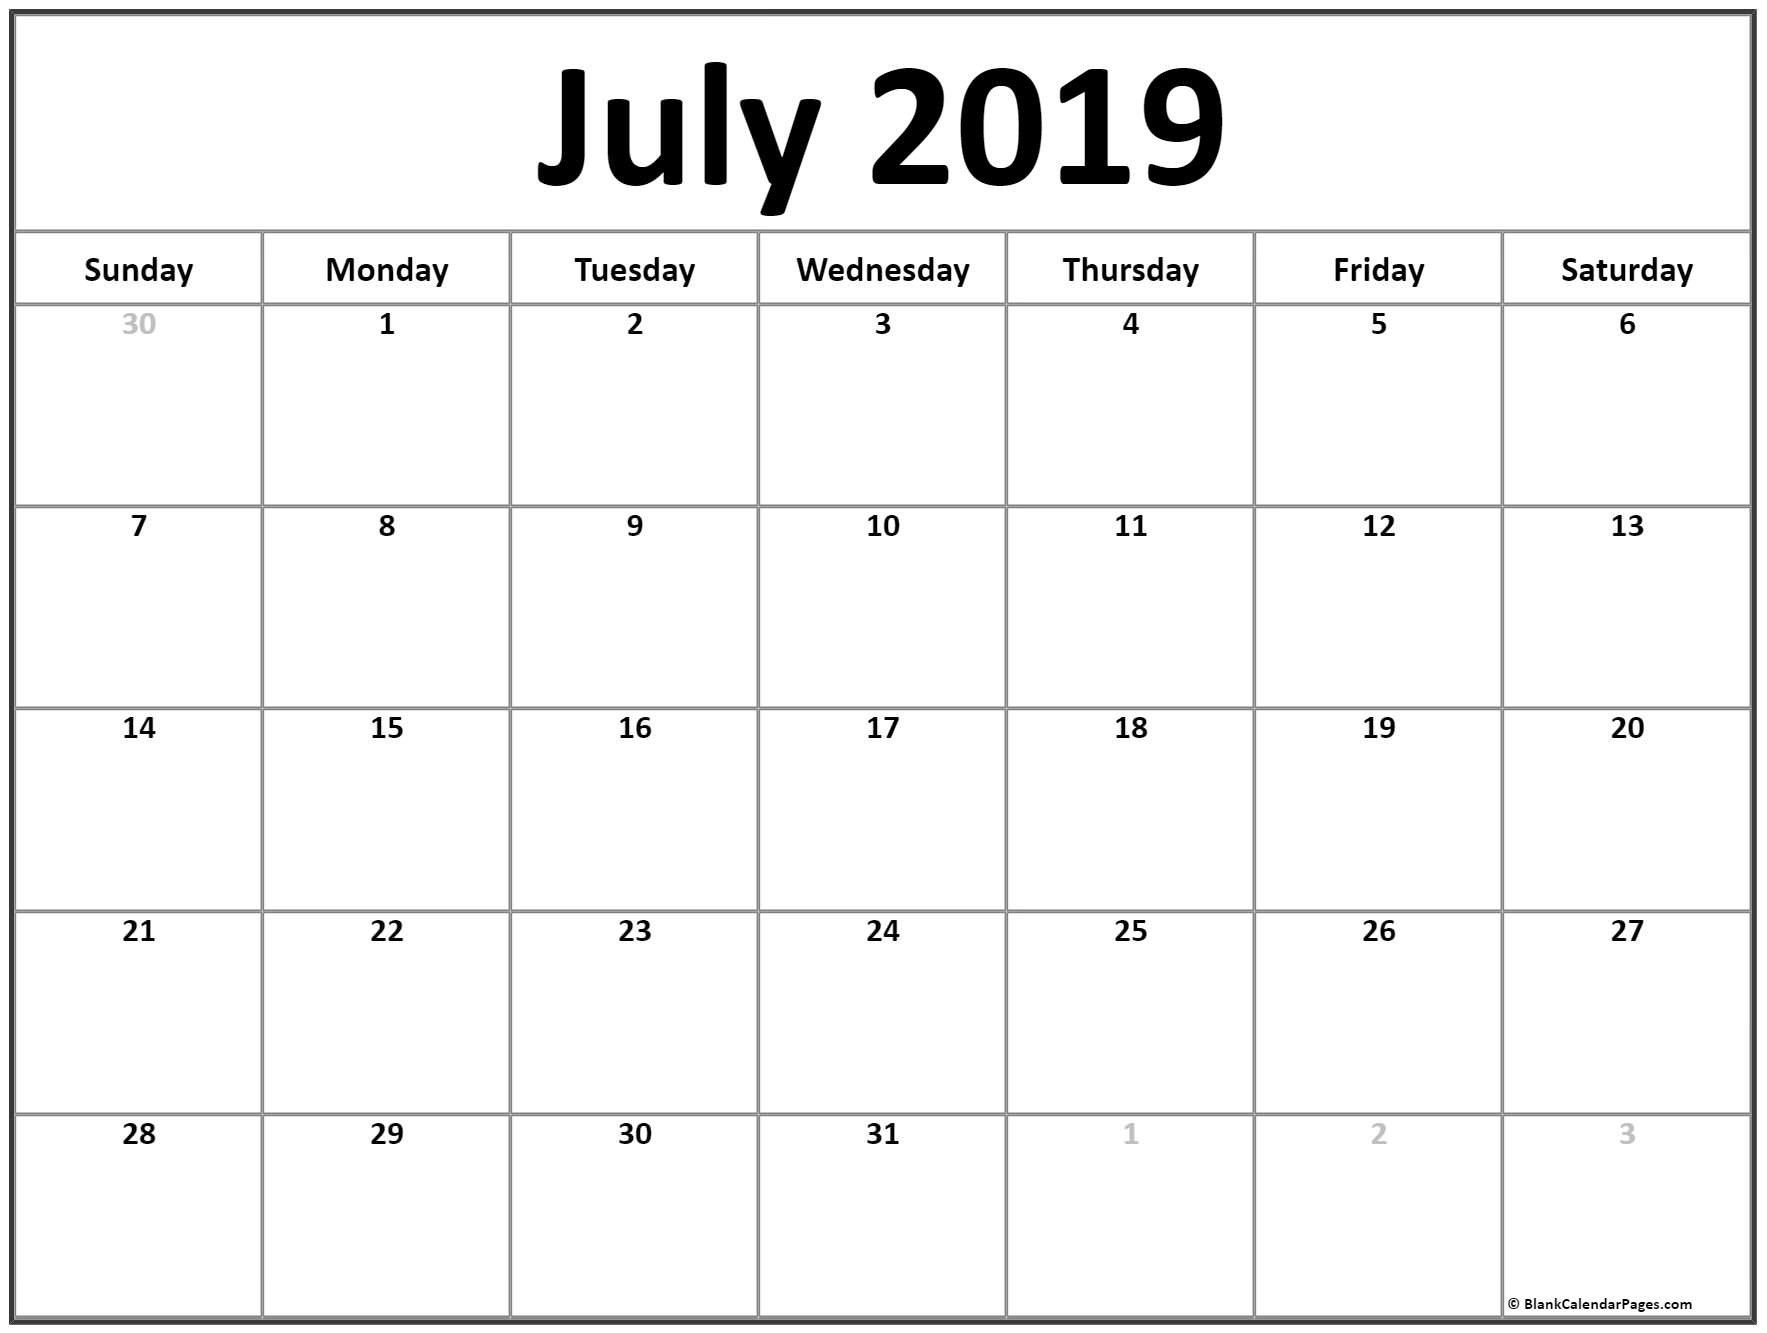 July 2019 Blank Calendar Template | 2019 July Calendar Planner intended for Printable Yearly Calendar July 2019 - June 2020